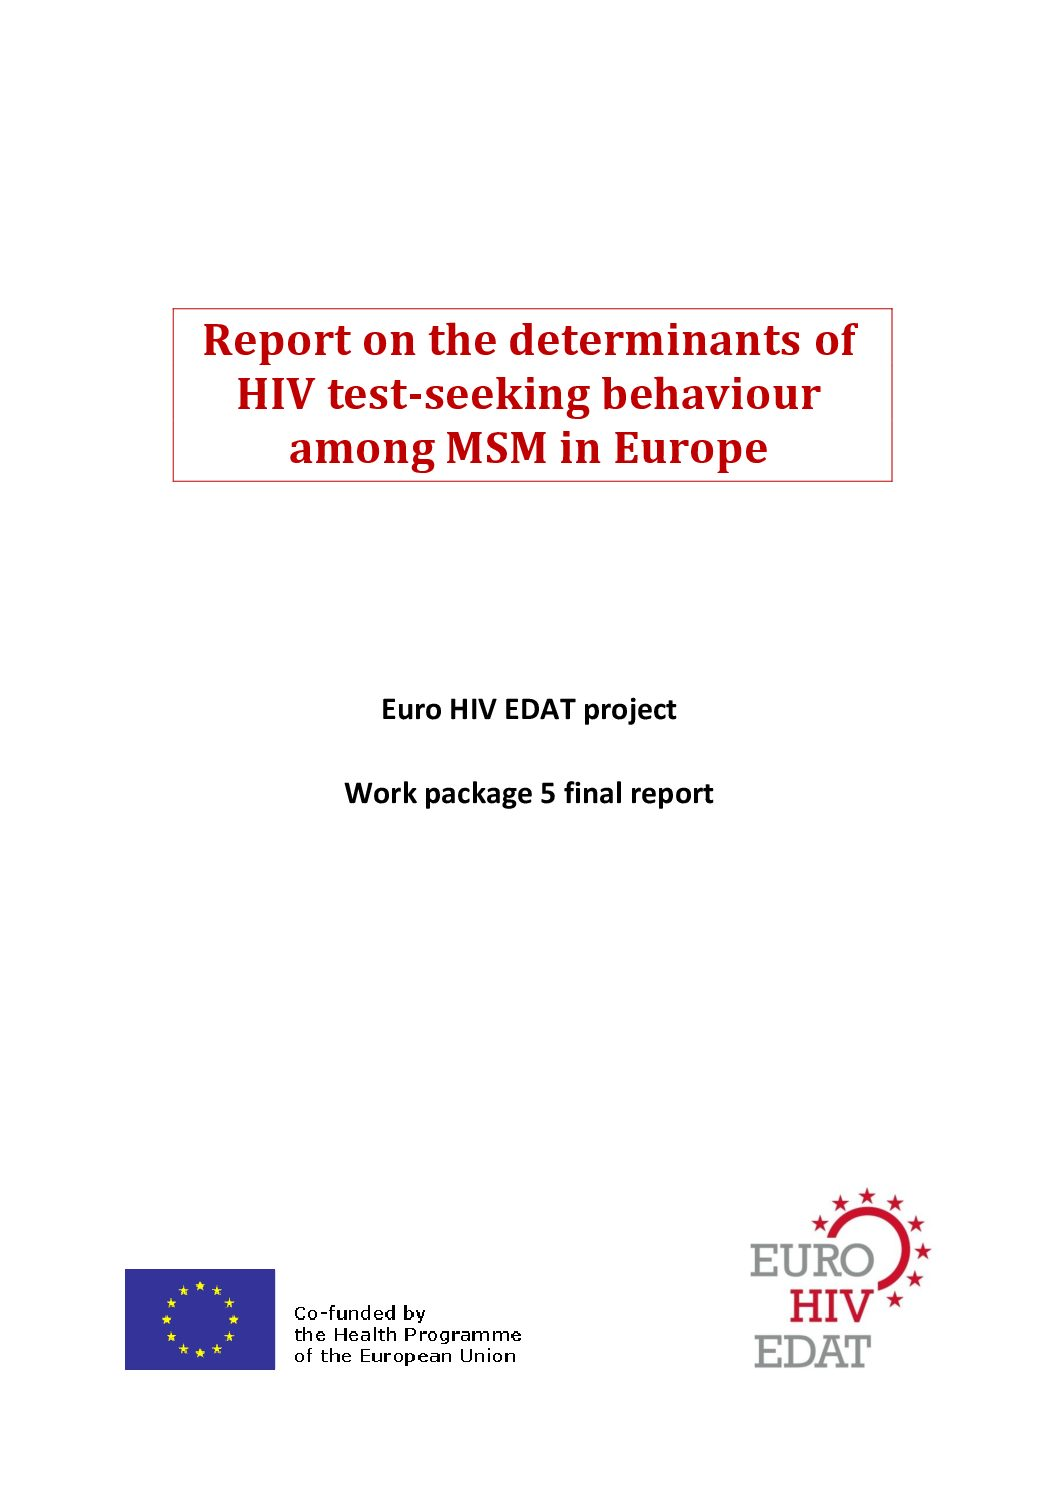 Report on the determinants of HIV test-seeking behaviour among MSM in Europe